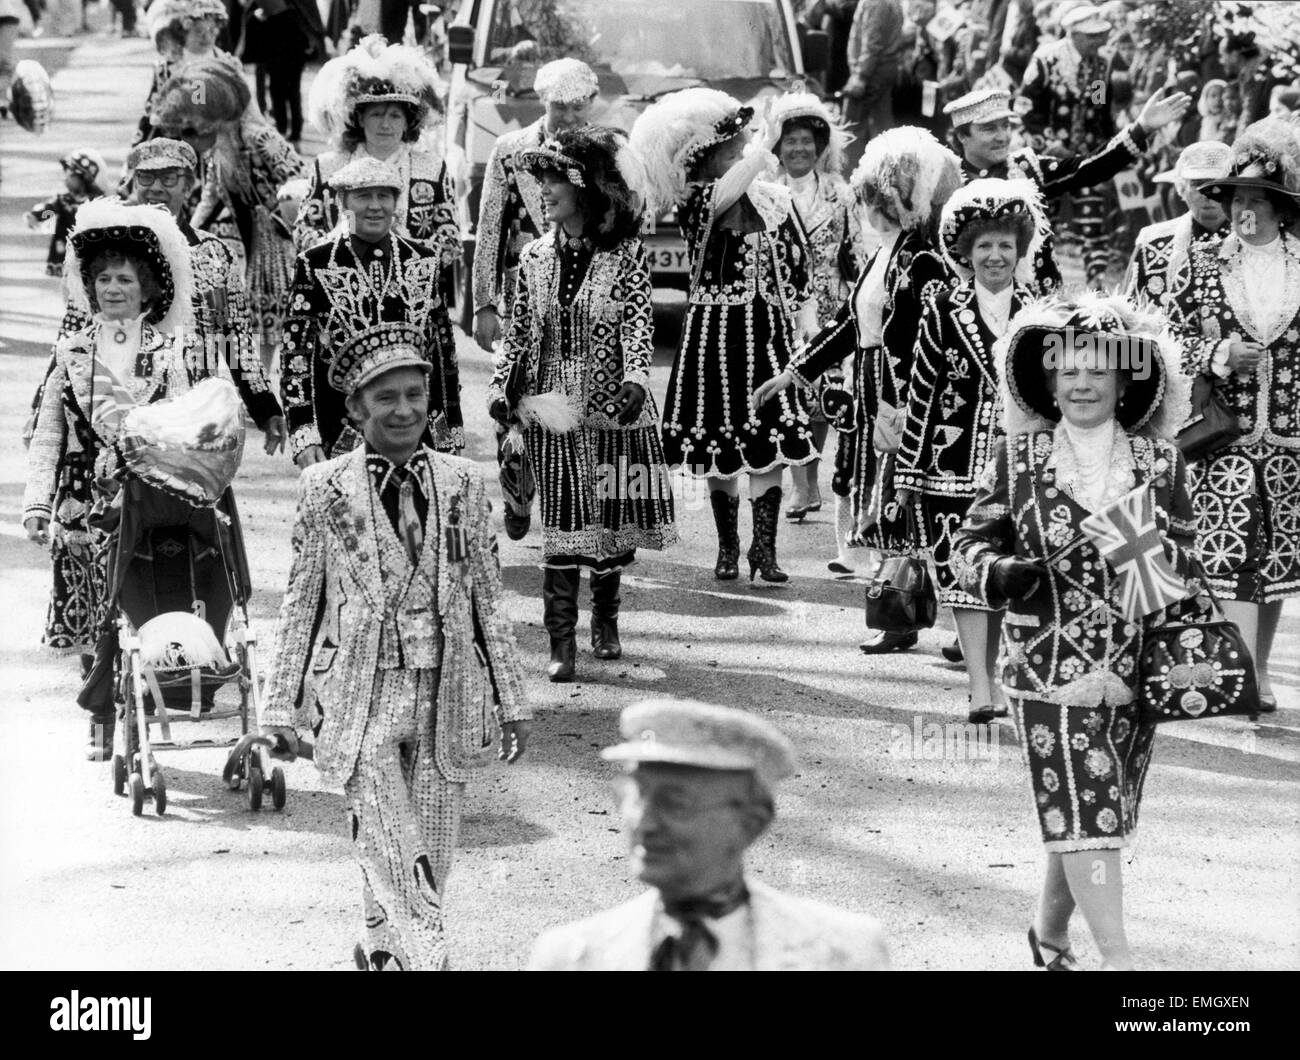 Pearly Kings and Queens seen here marching in the 1985 Battersea Easter Parade. 7th April 1985 - Stock Image